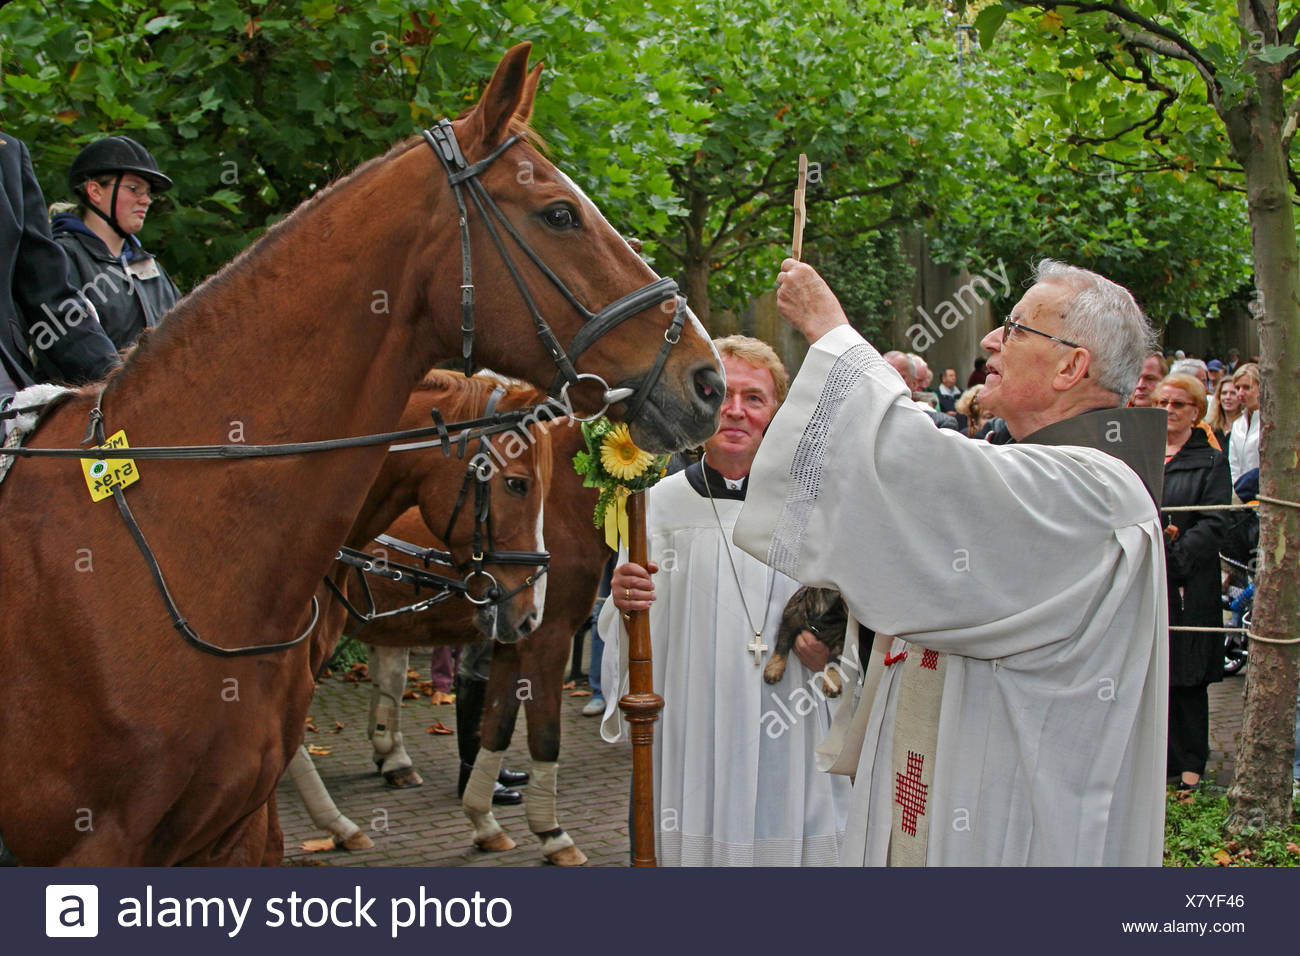 catholic priest issues the blessing to riding horses, Germany, North Rhine-Westphalia, Velbert Neviges - Stock Image